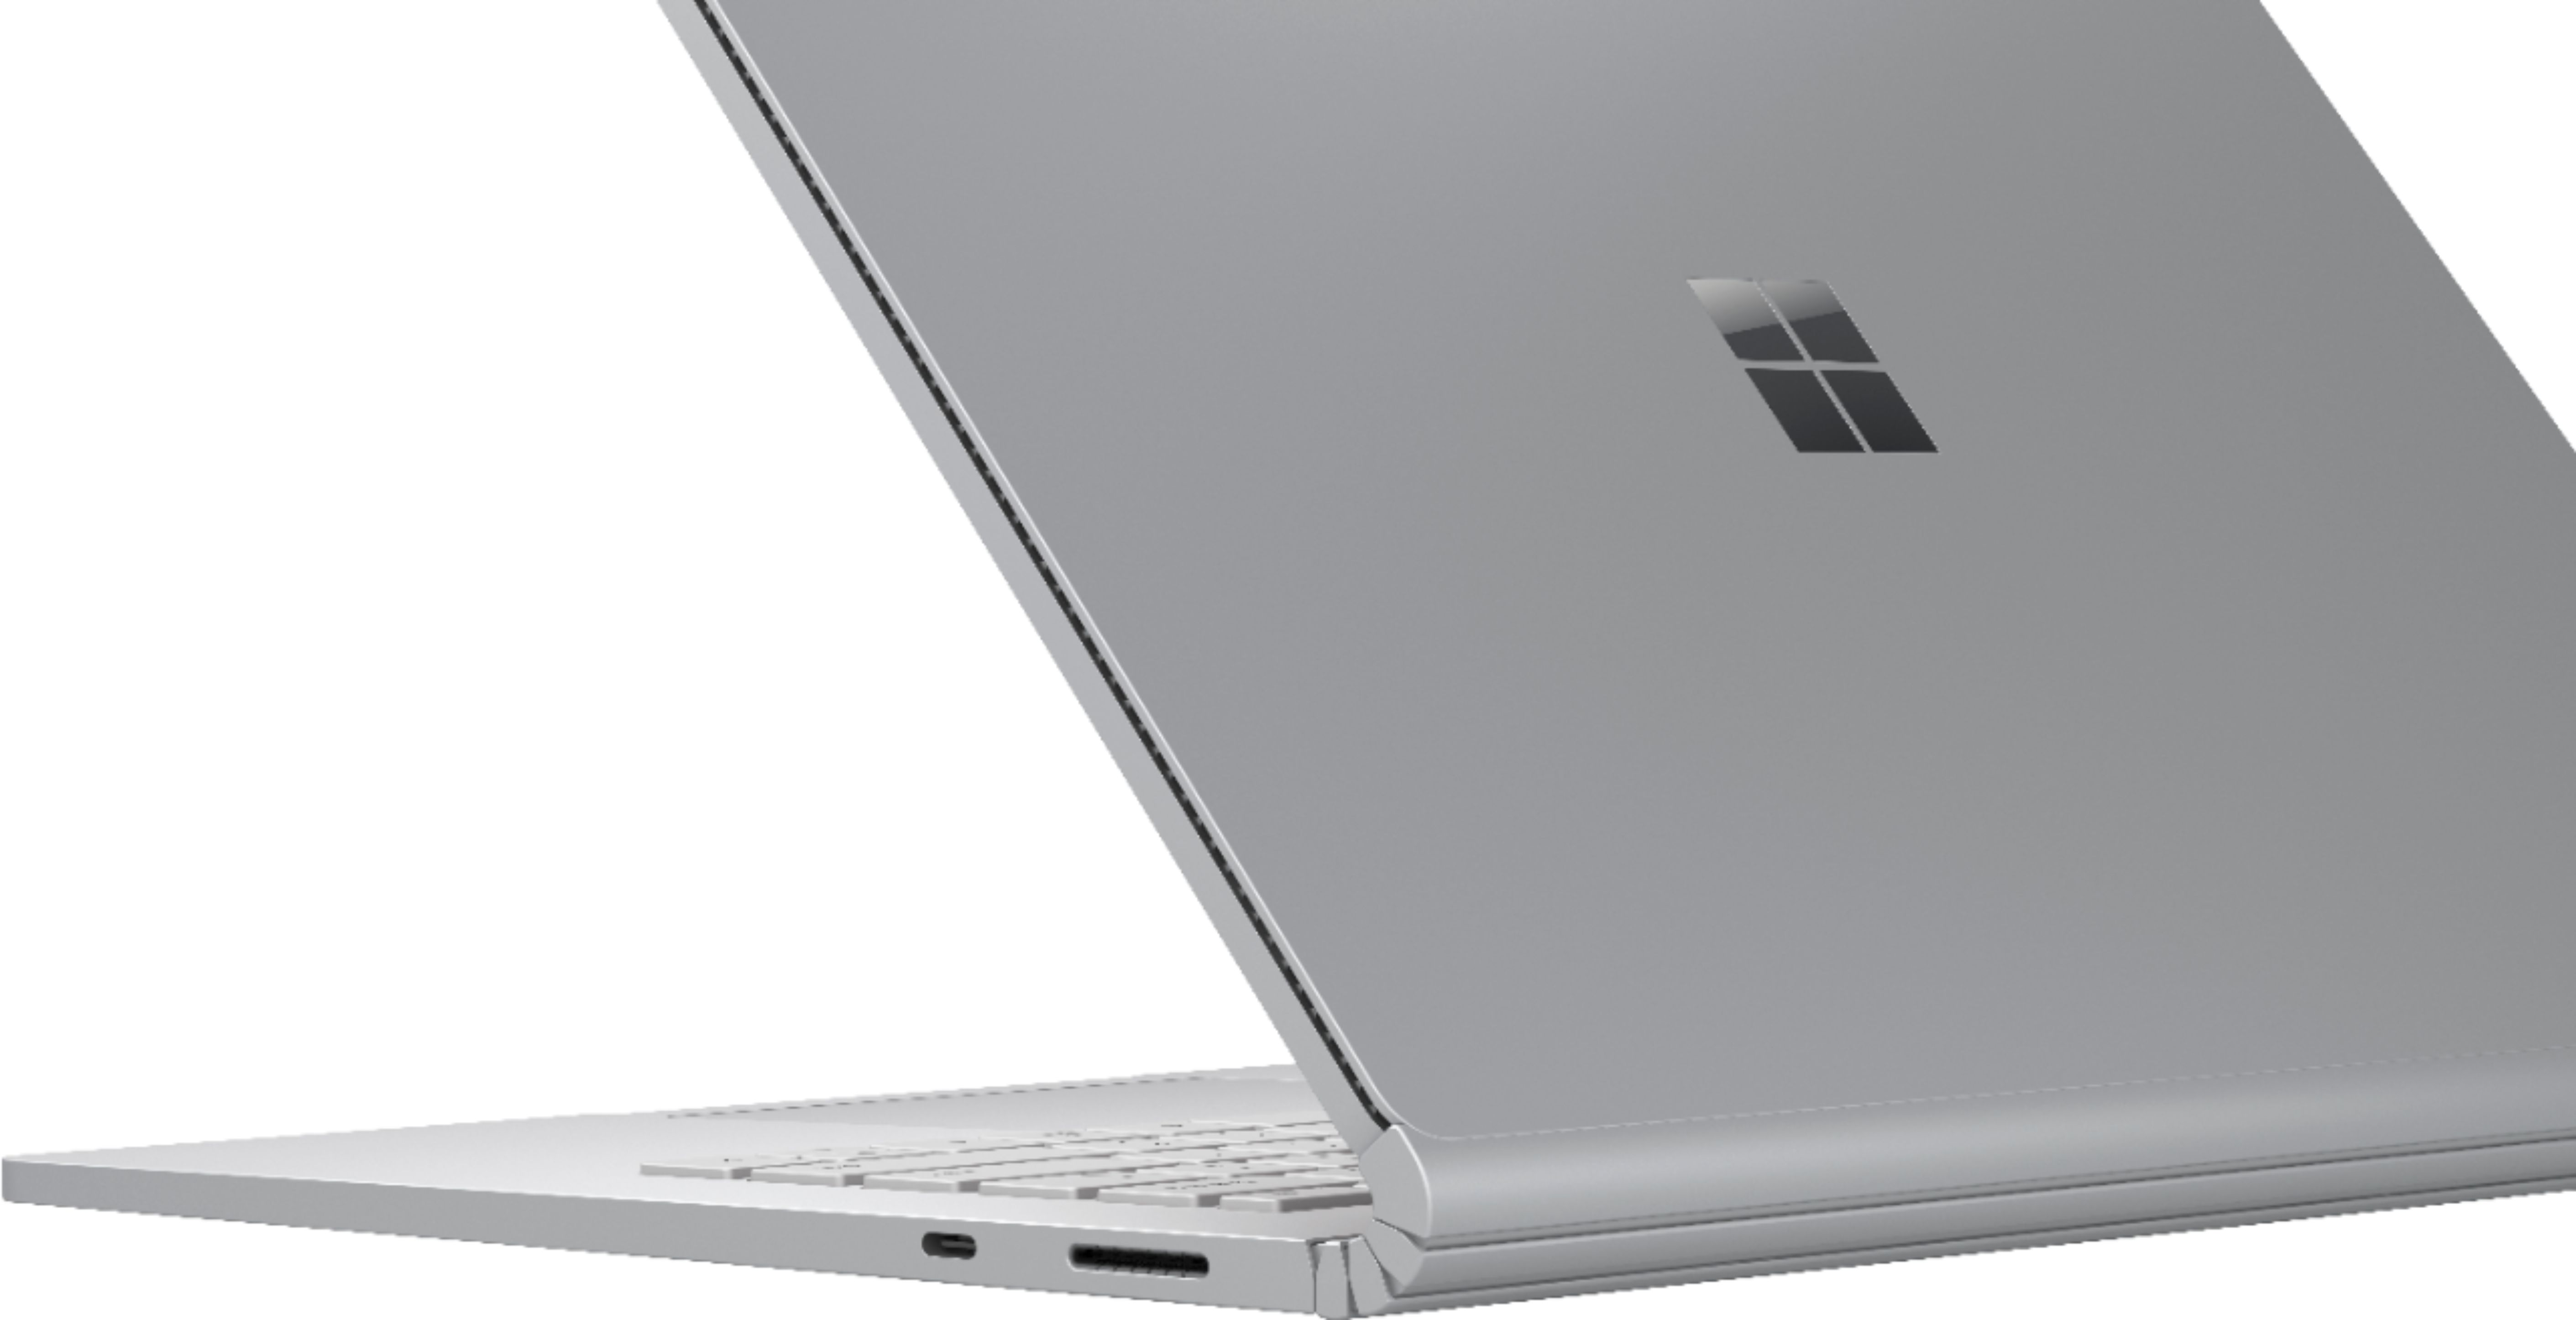 """Alt View Zoom 12. Microsoft - Surface Book 3 13.5"""" Touch-Screen PixelSense™ - 2-in-1 Laptop - Intel Core i7 - 16GB Memory - 256GB SSD - Platinum."""